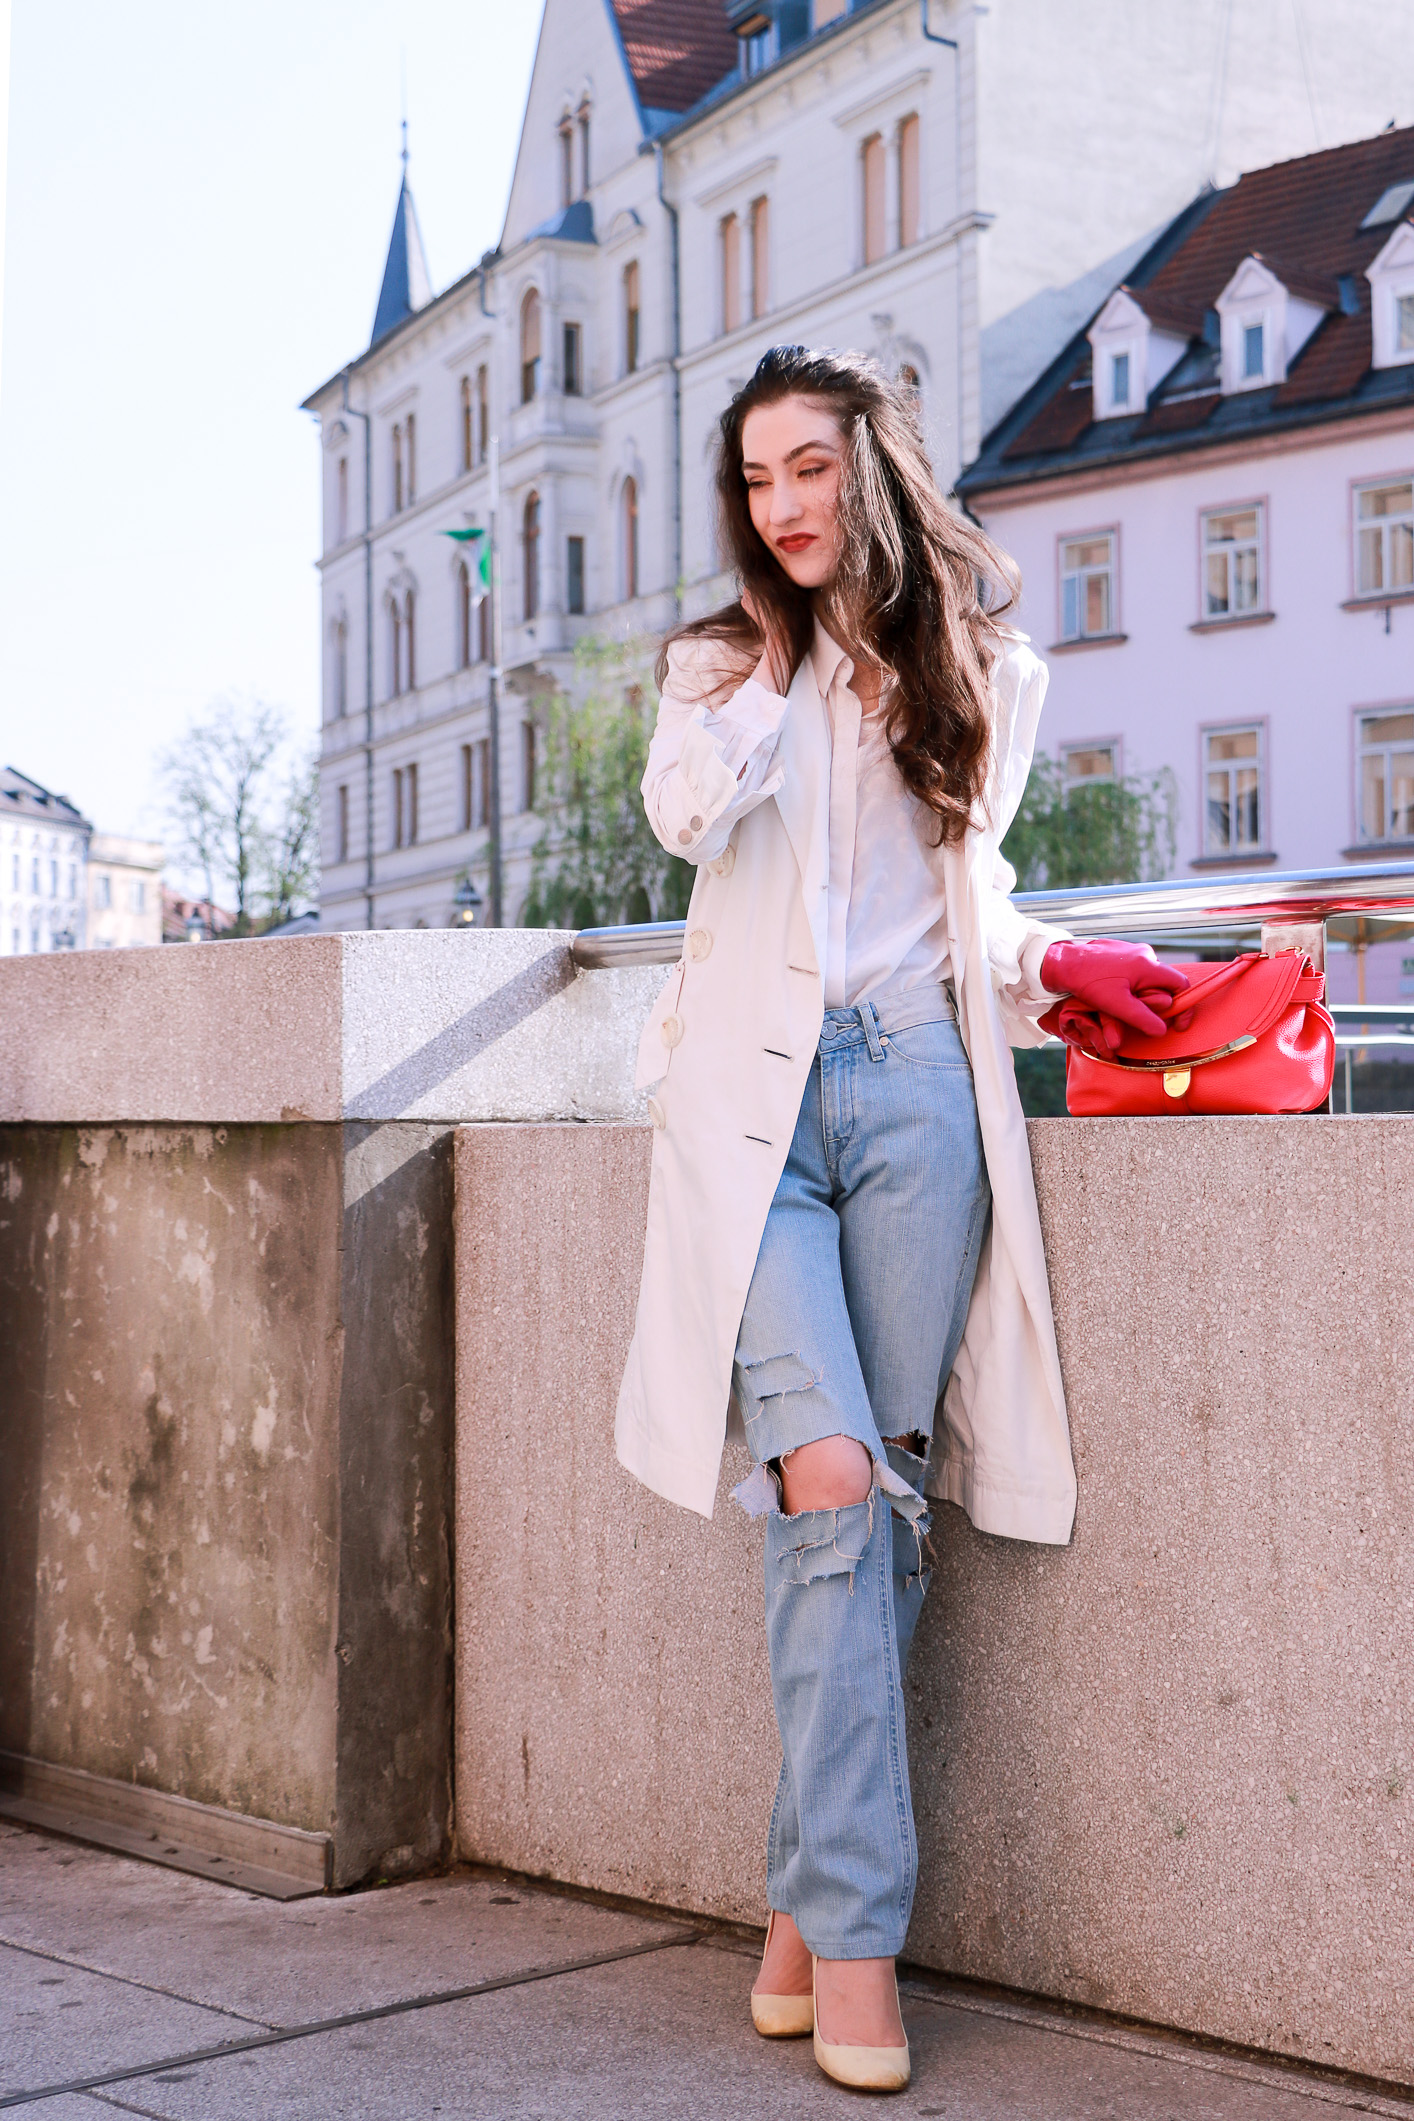 Fashion blogger Veronika Lipar of Brunette From Wall Street sharing how to wear white long trench coat for a chic casual style